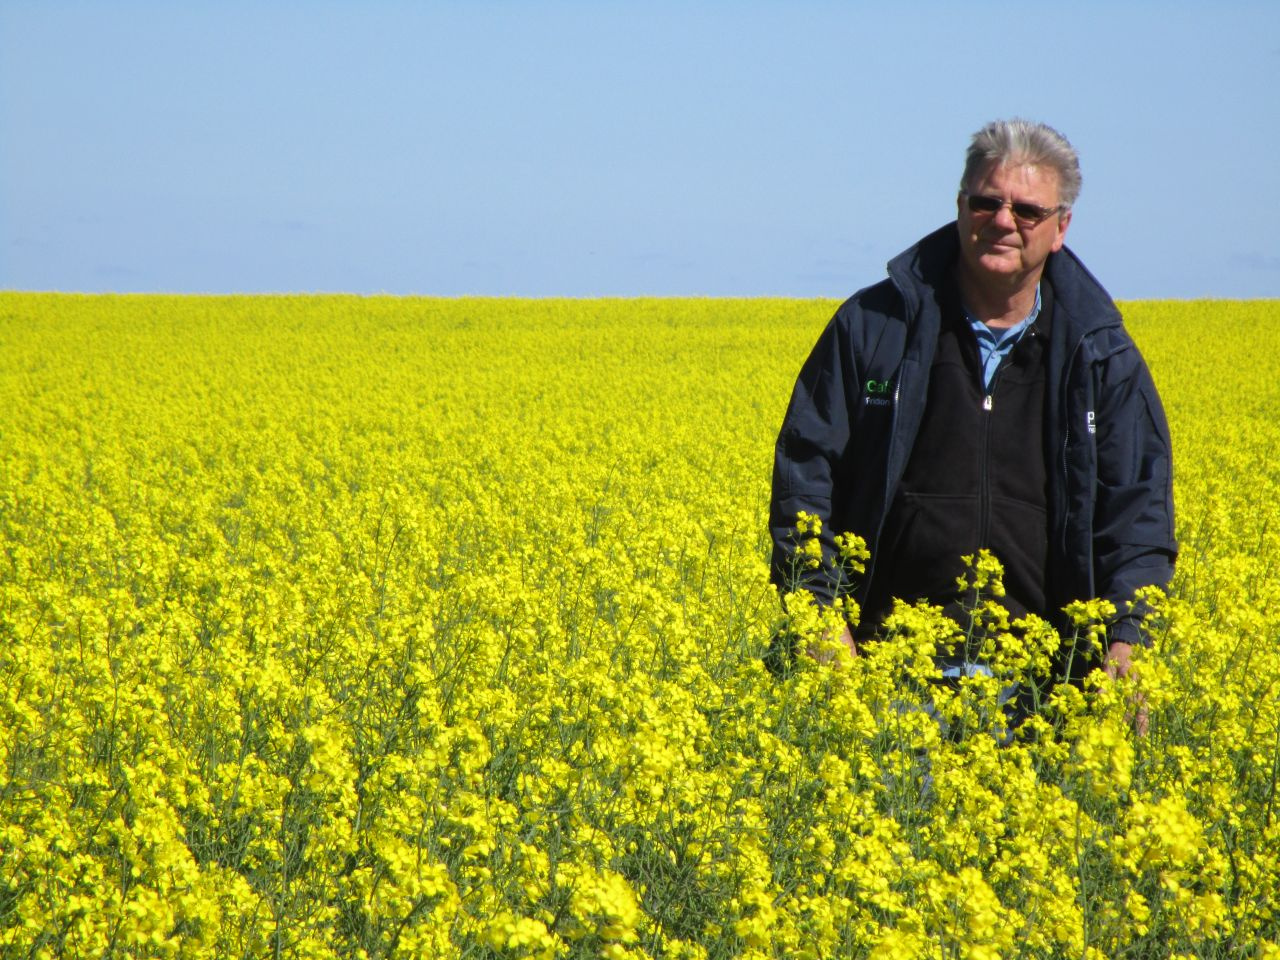 Stuart McAlpine is passionate about farming sustainably in the Northern Agricultural Region.